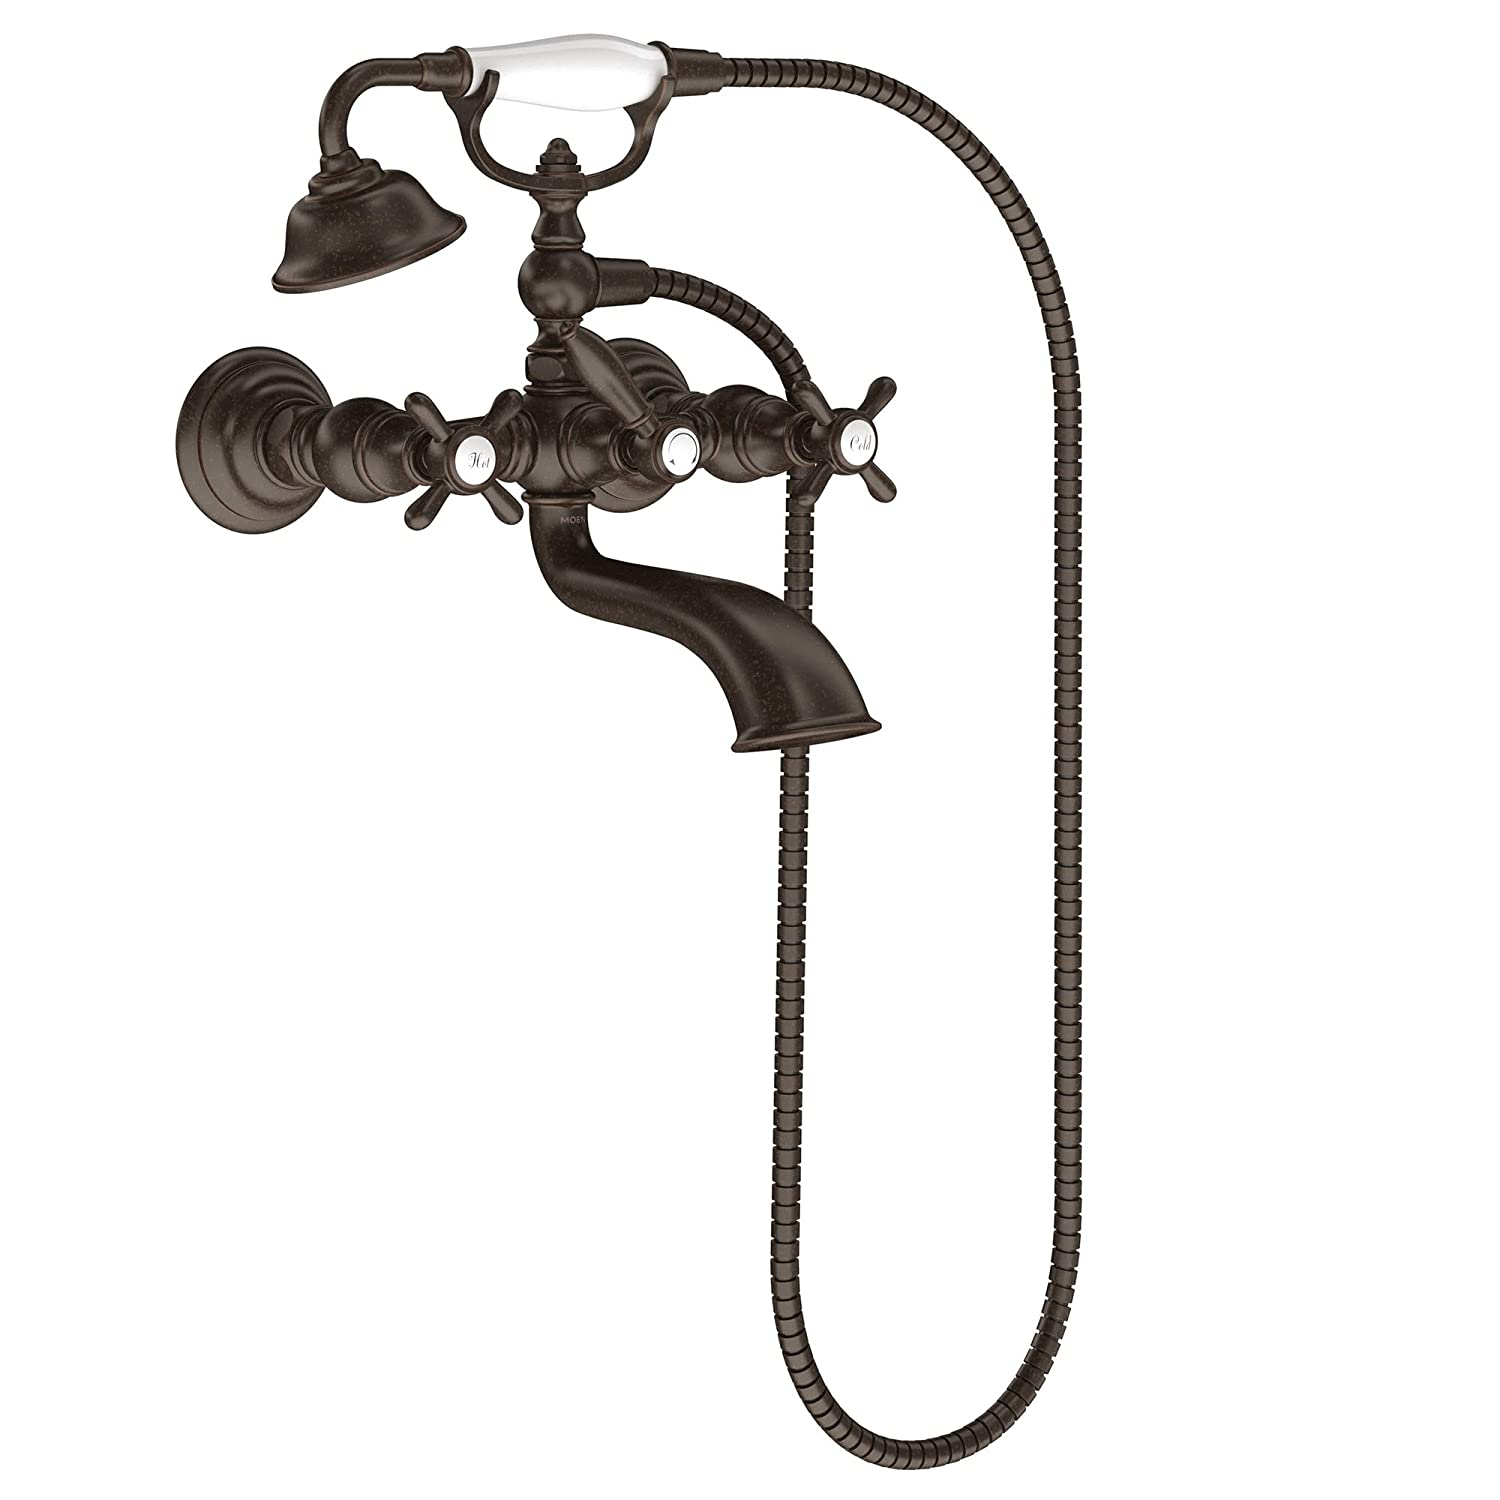 Chrome Moen S22110 Weymouth Two-Handle Freestanding Tub Filler with Lever-Handles and Handshower